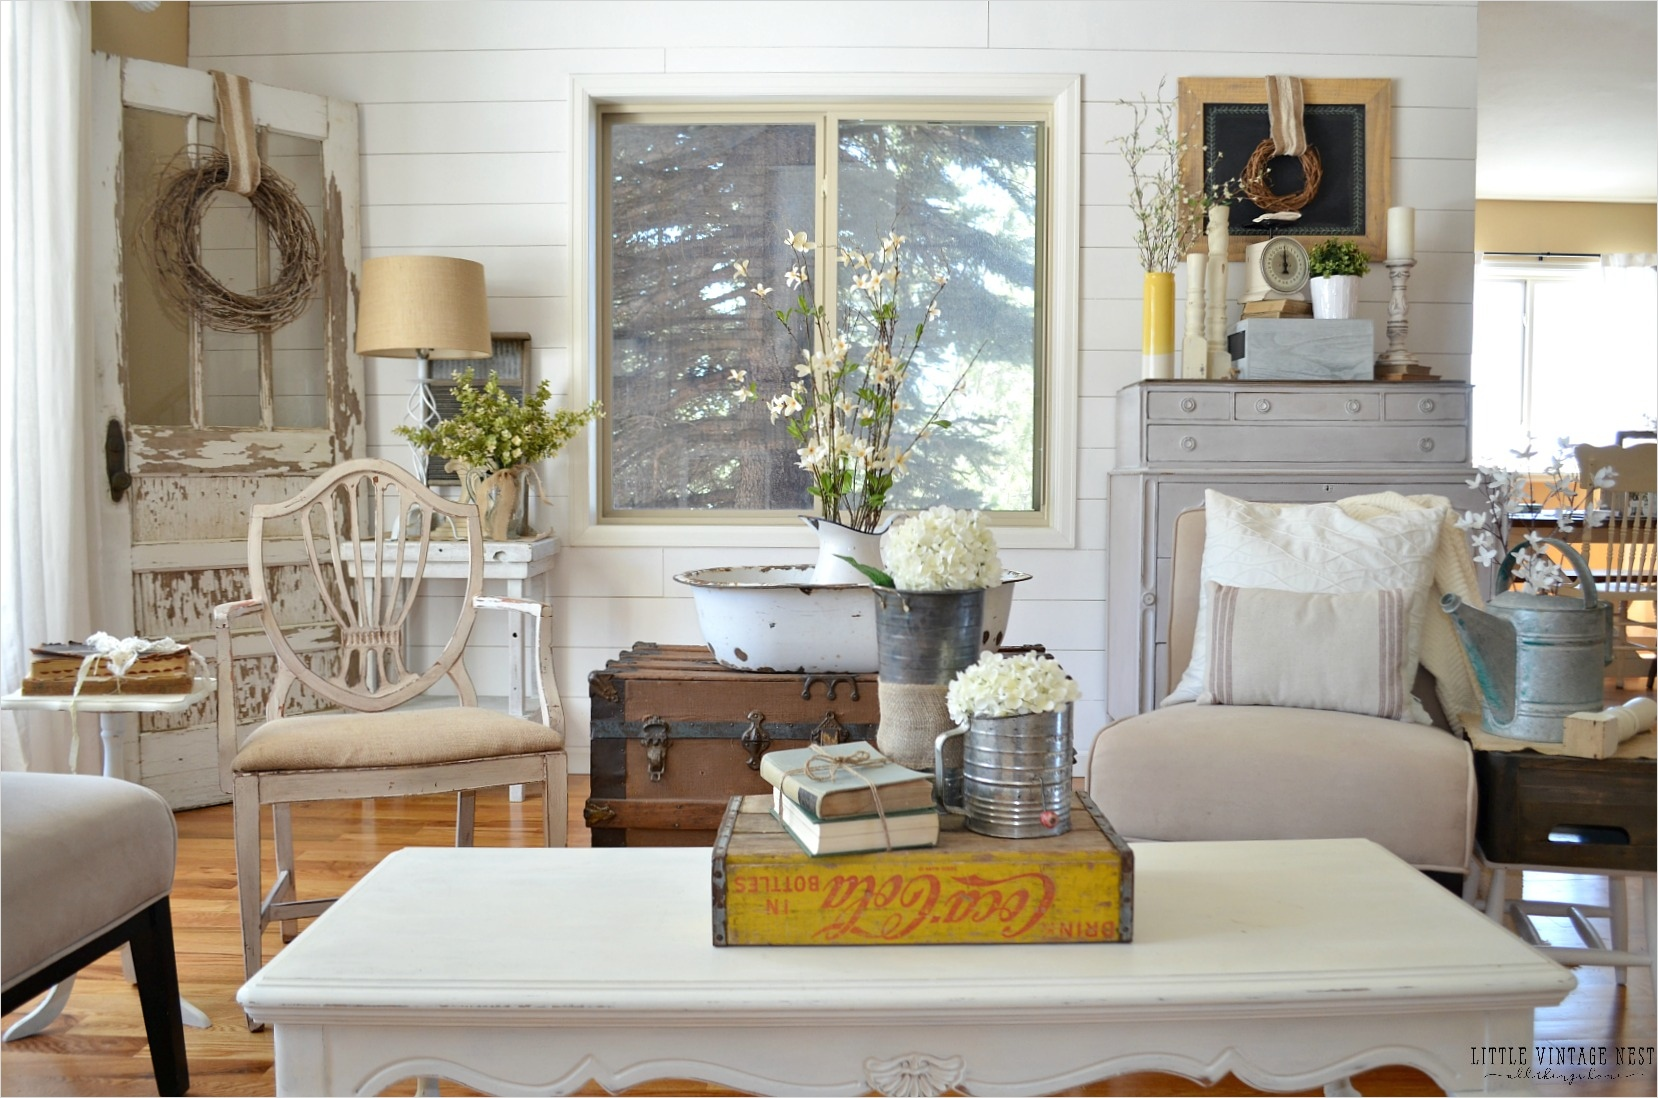 Farmhouse Chic Decorating Ideas 43 How to Decorate with Vintage Decor Little Vintage Nest 6